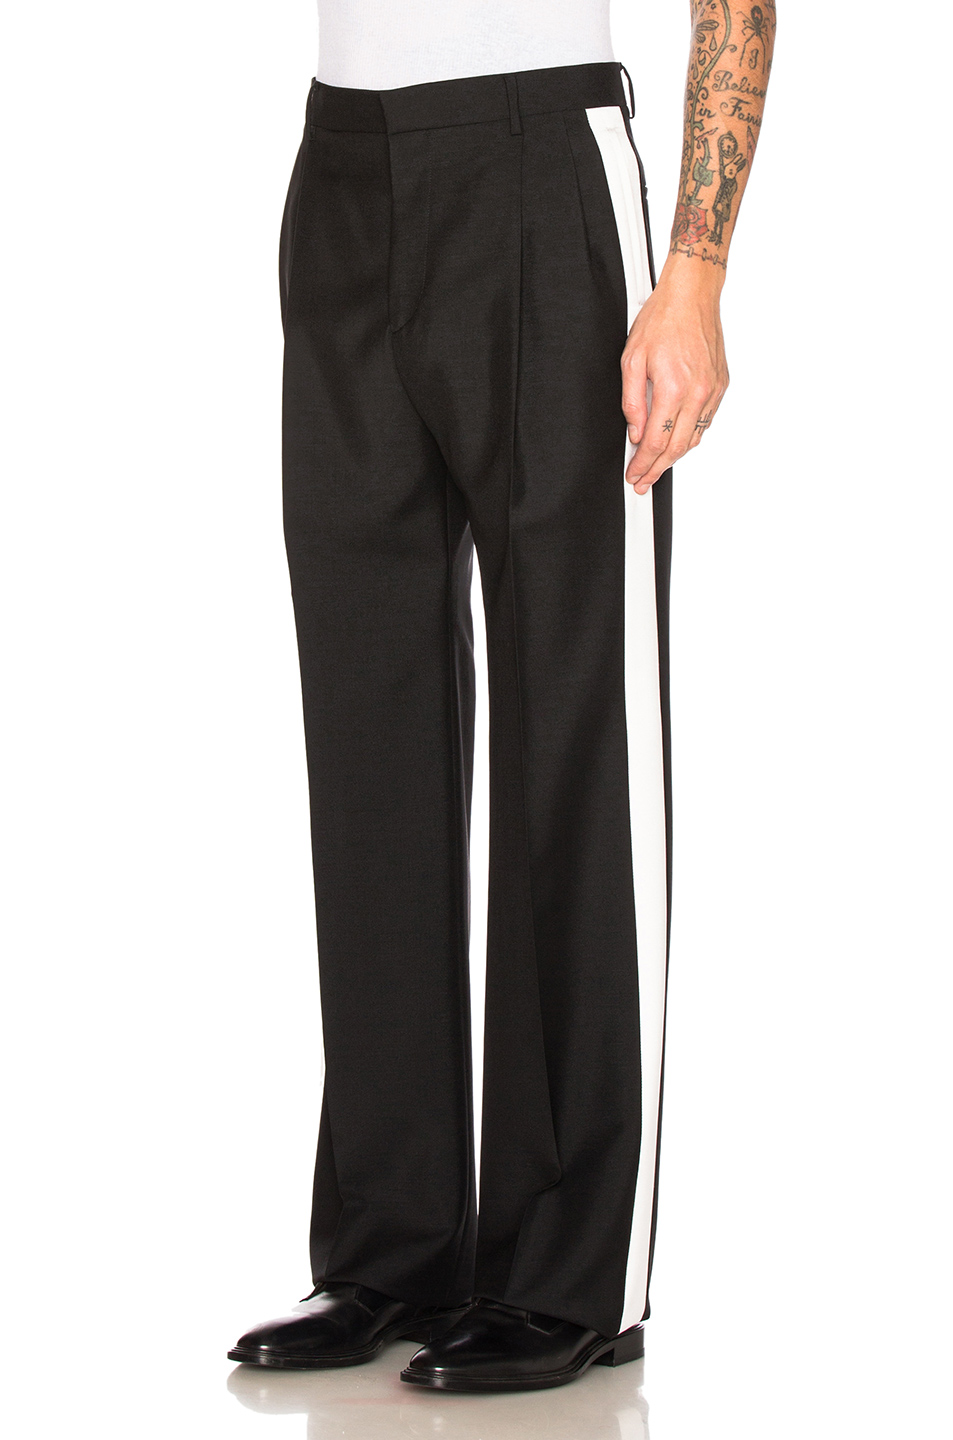 Givenchy Contrast Stripe Trousers in Black